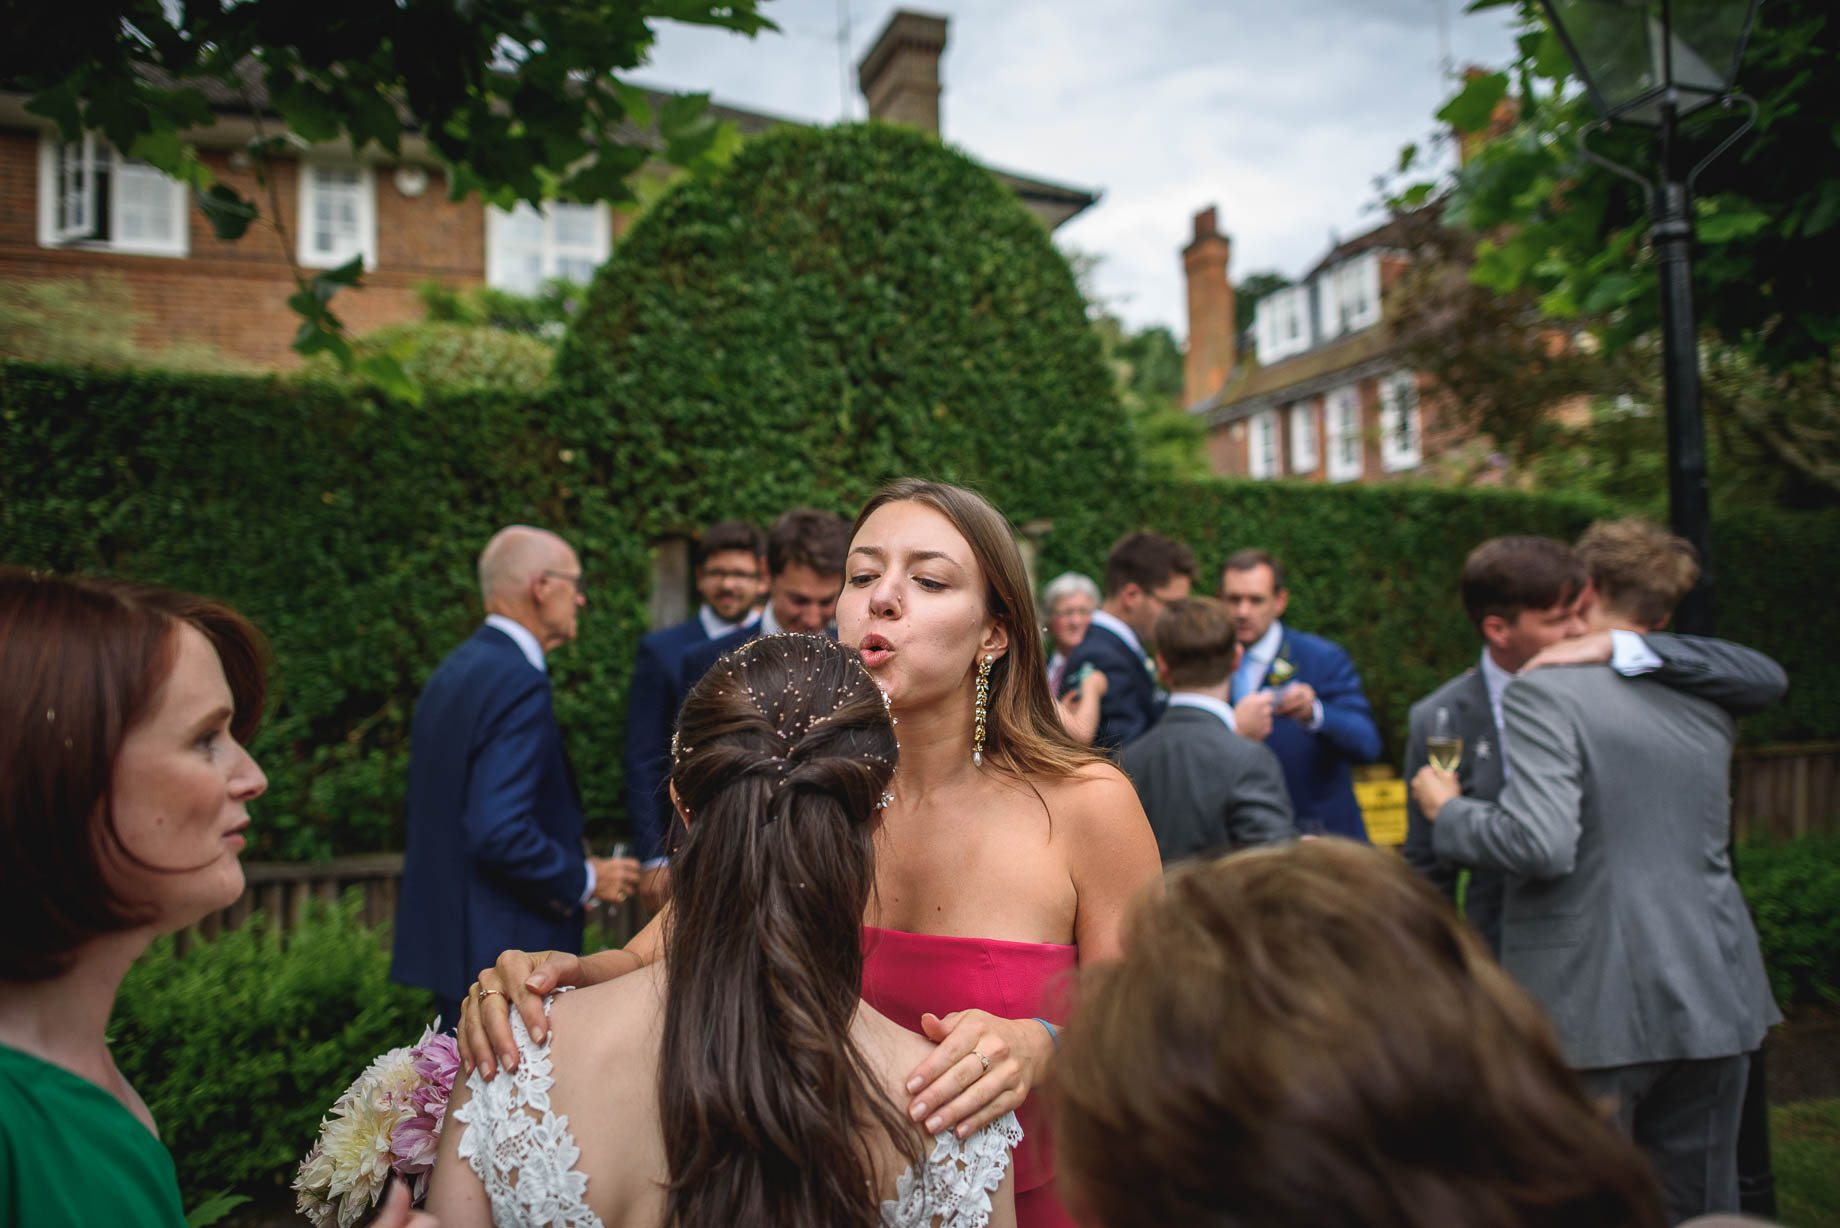 London wedding photography - Claire and JW - Guy Collier Photography (84 of 153)